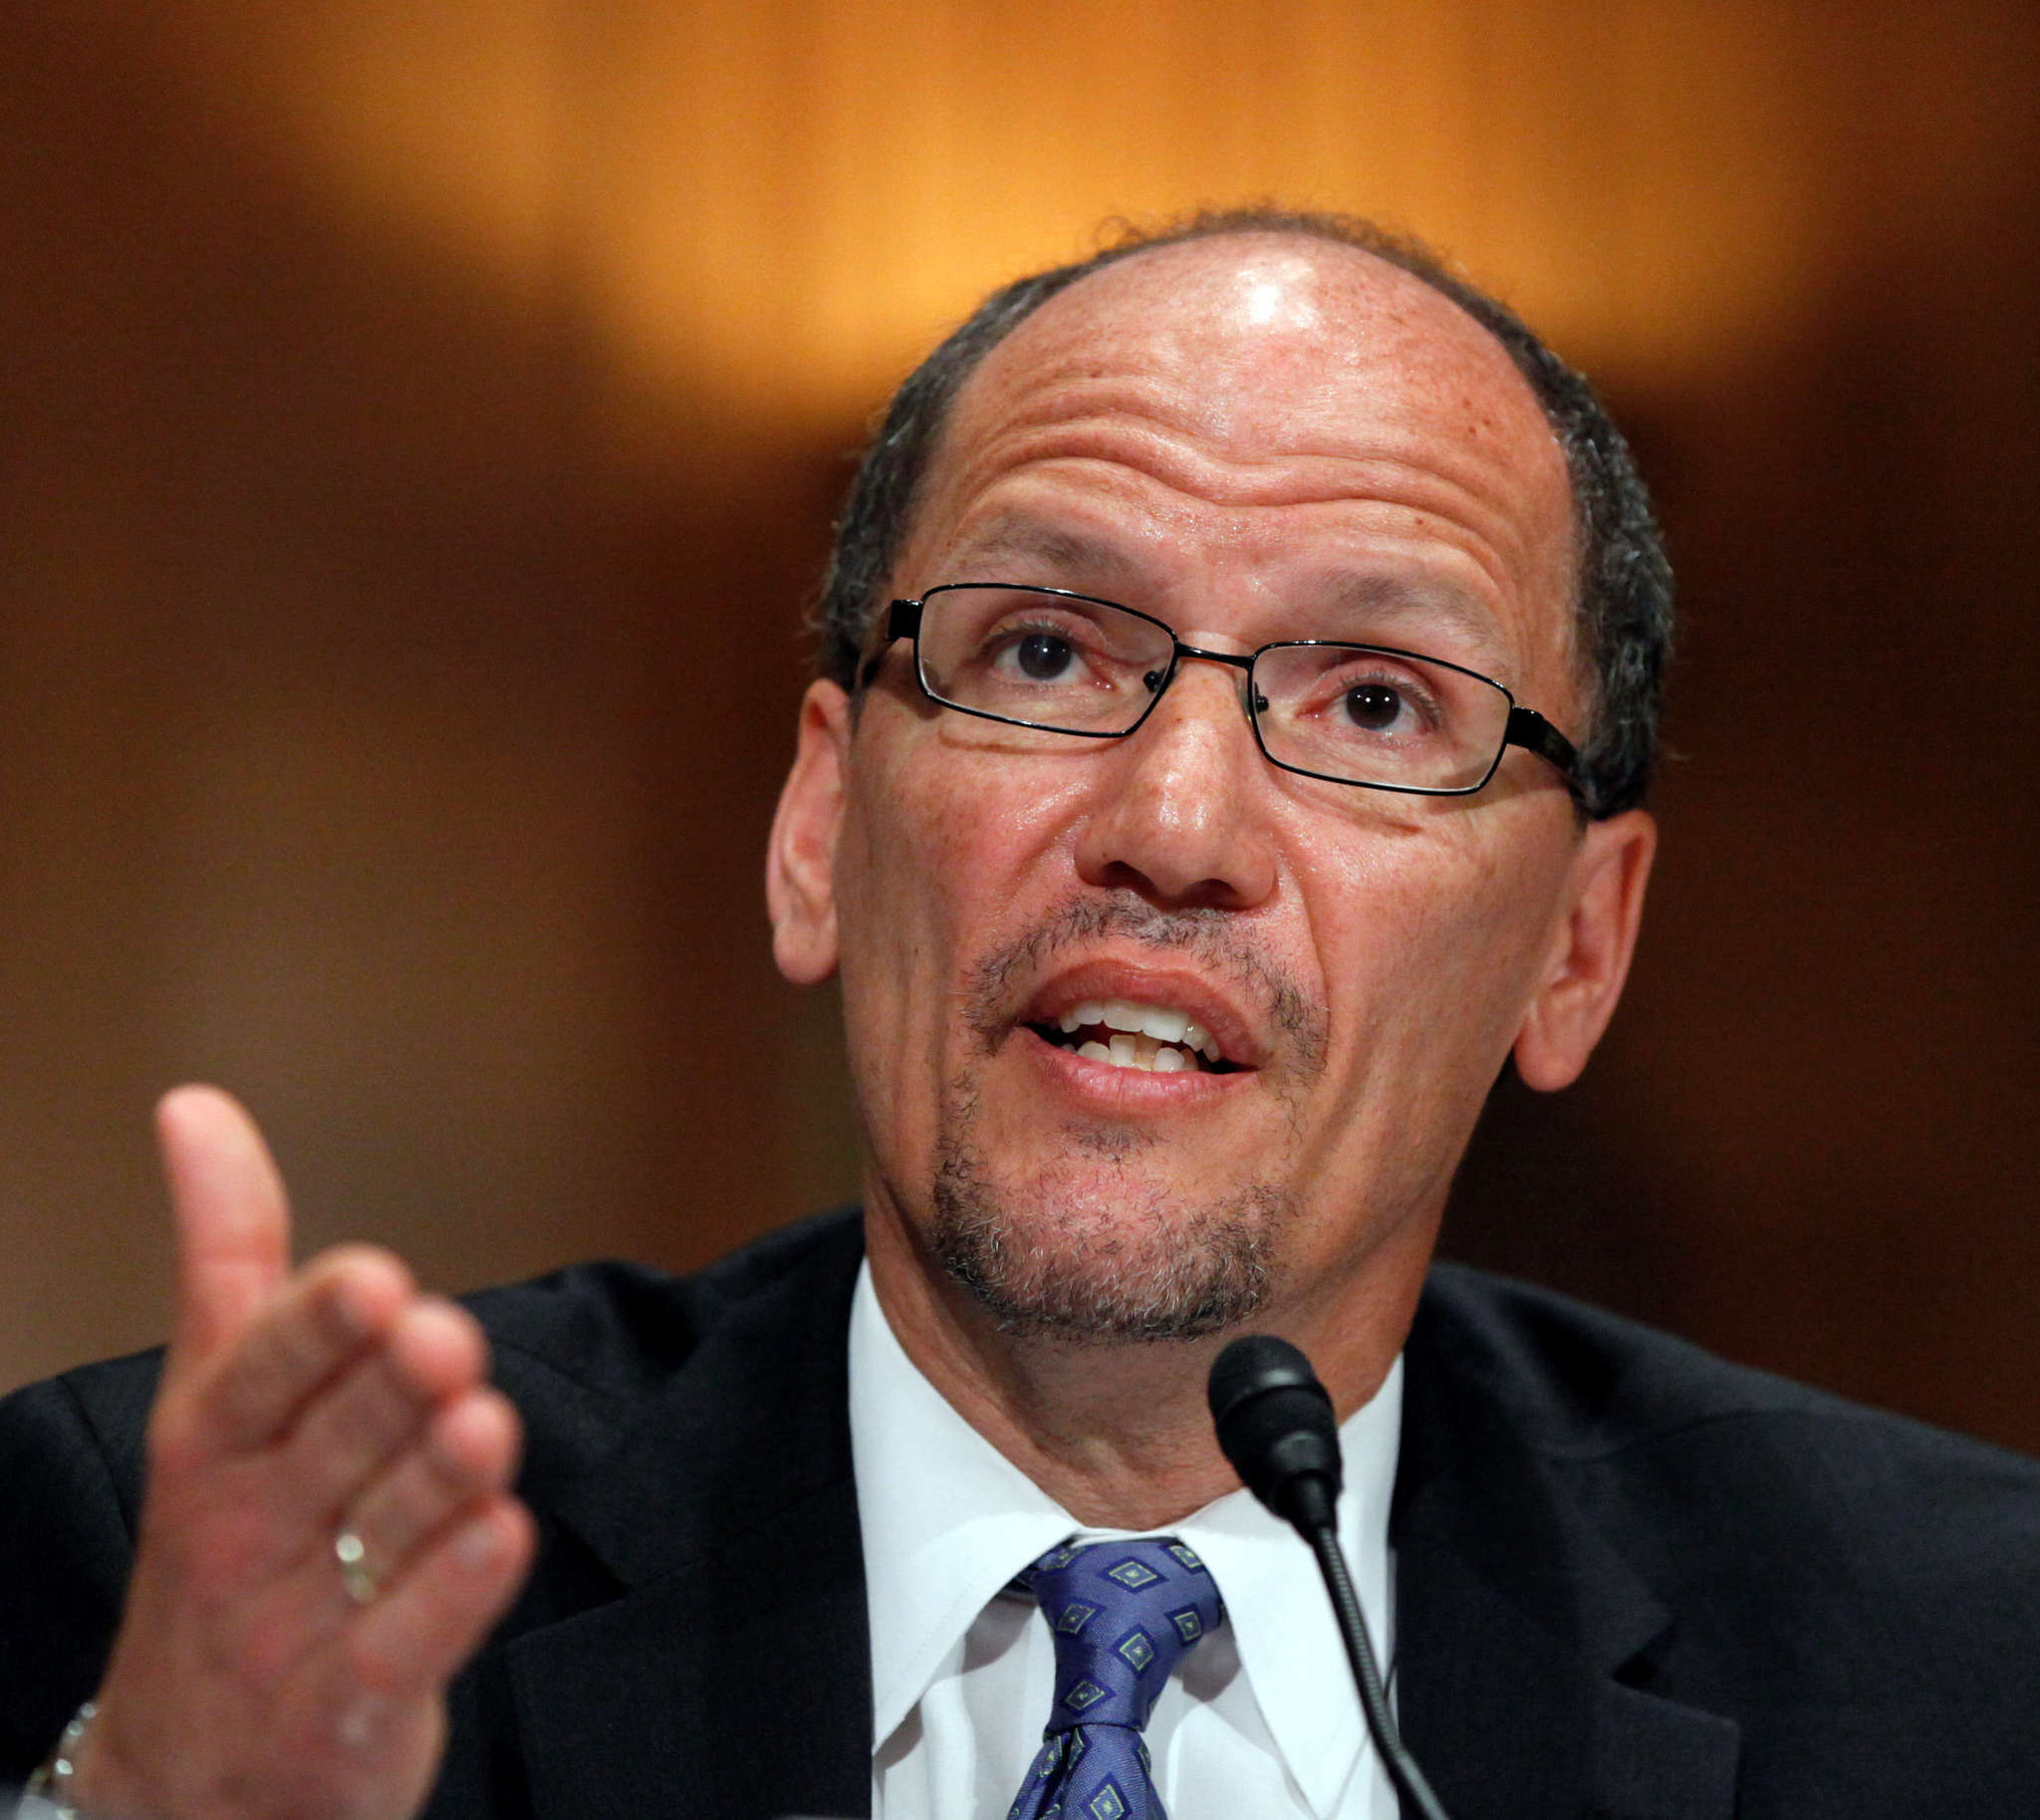 Labor Secretary Thomas Perez met with both sides. AP